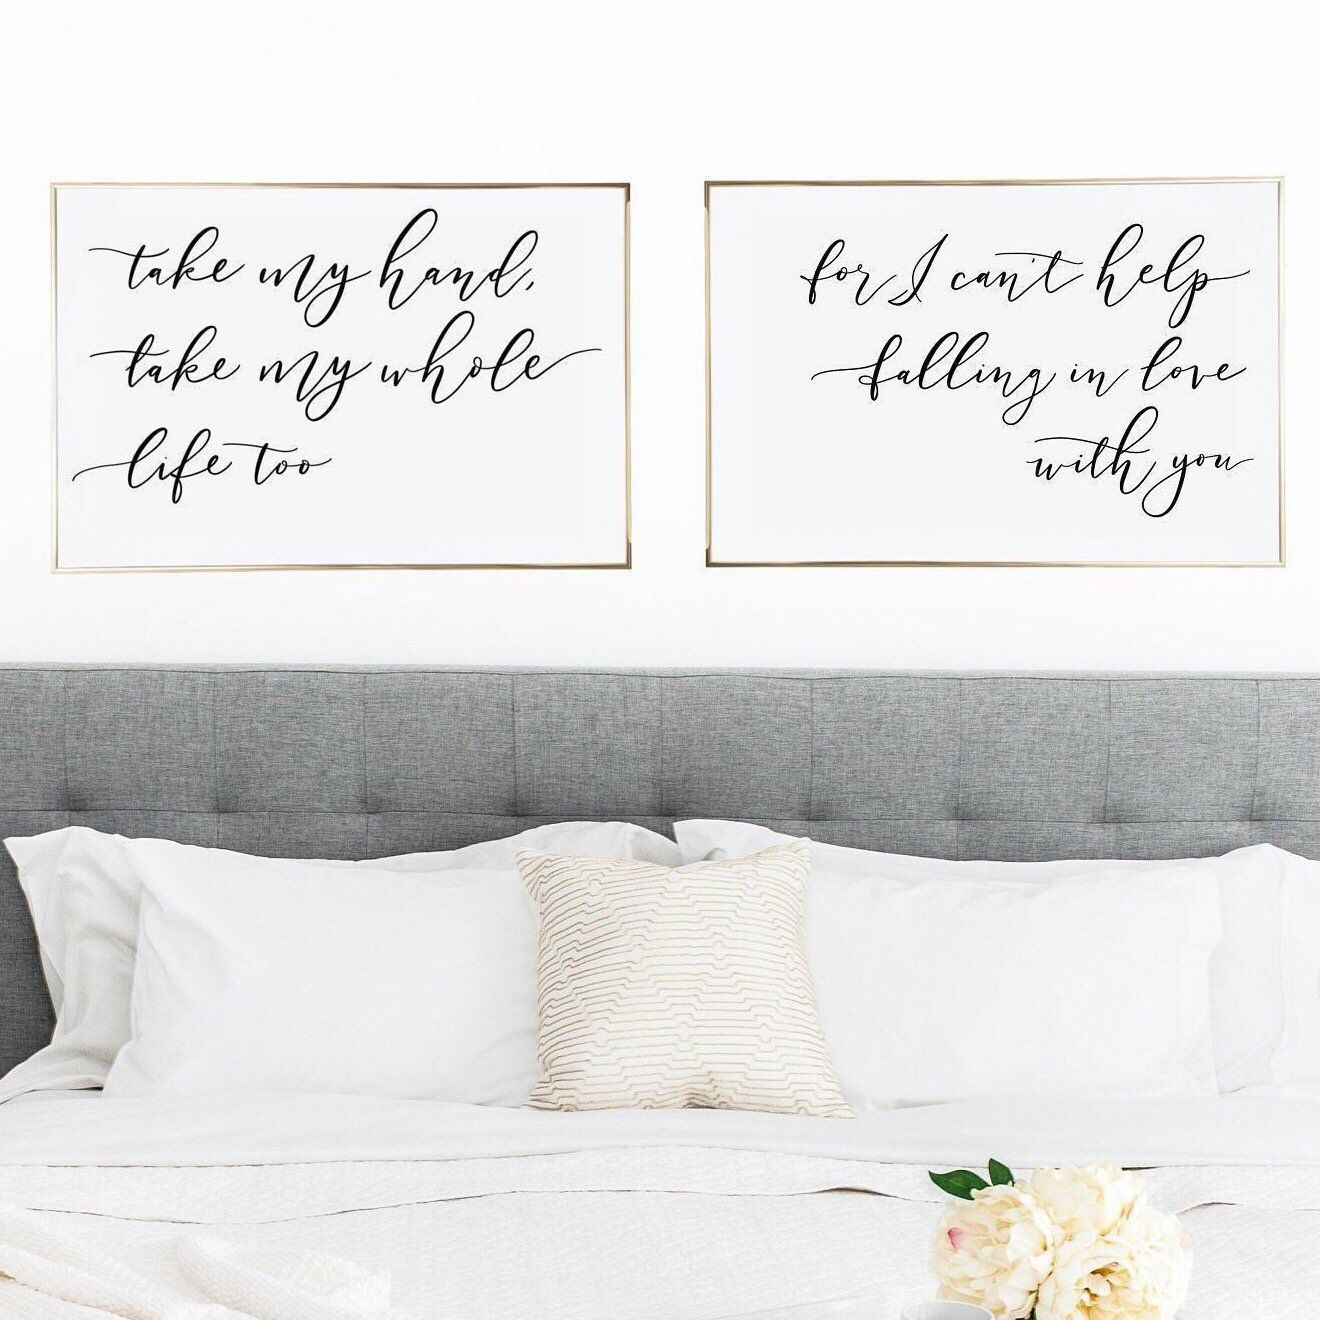 Falling In Love With You Printable Wall Art Set Of 2 Prints Etsy Wall Printables Elvis Quotes Artwork Above Bed